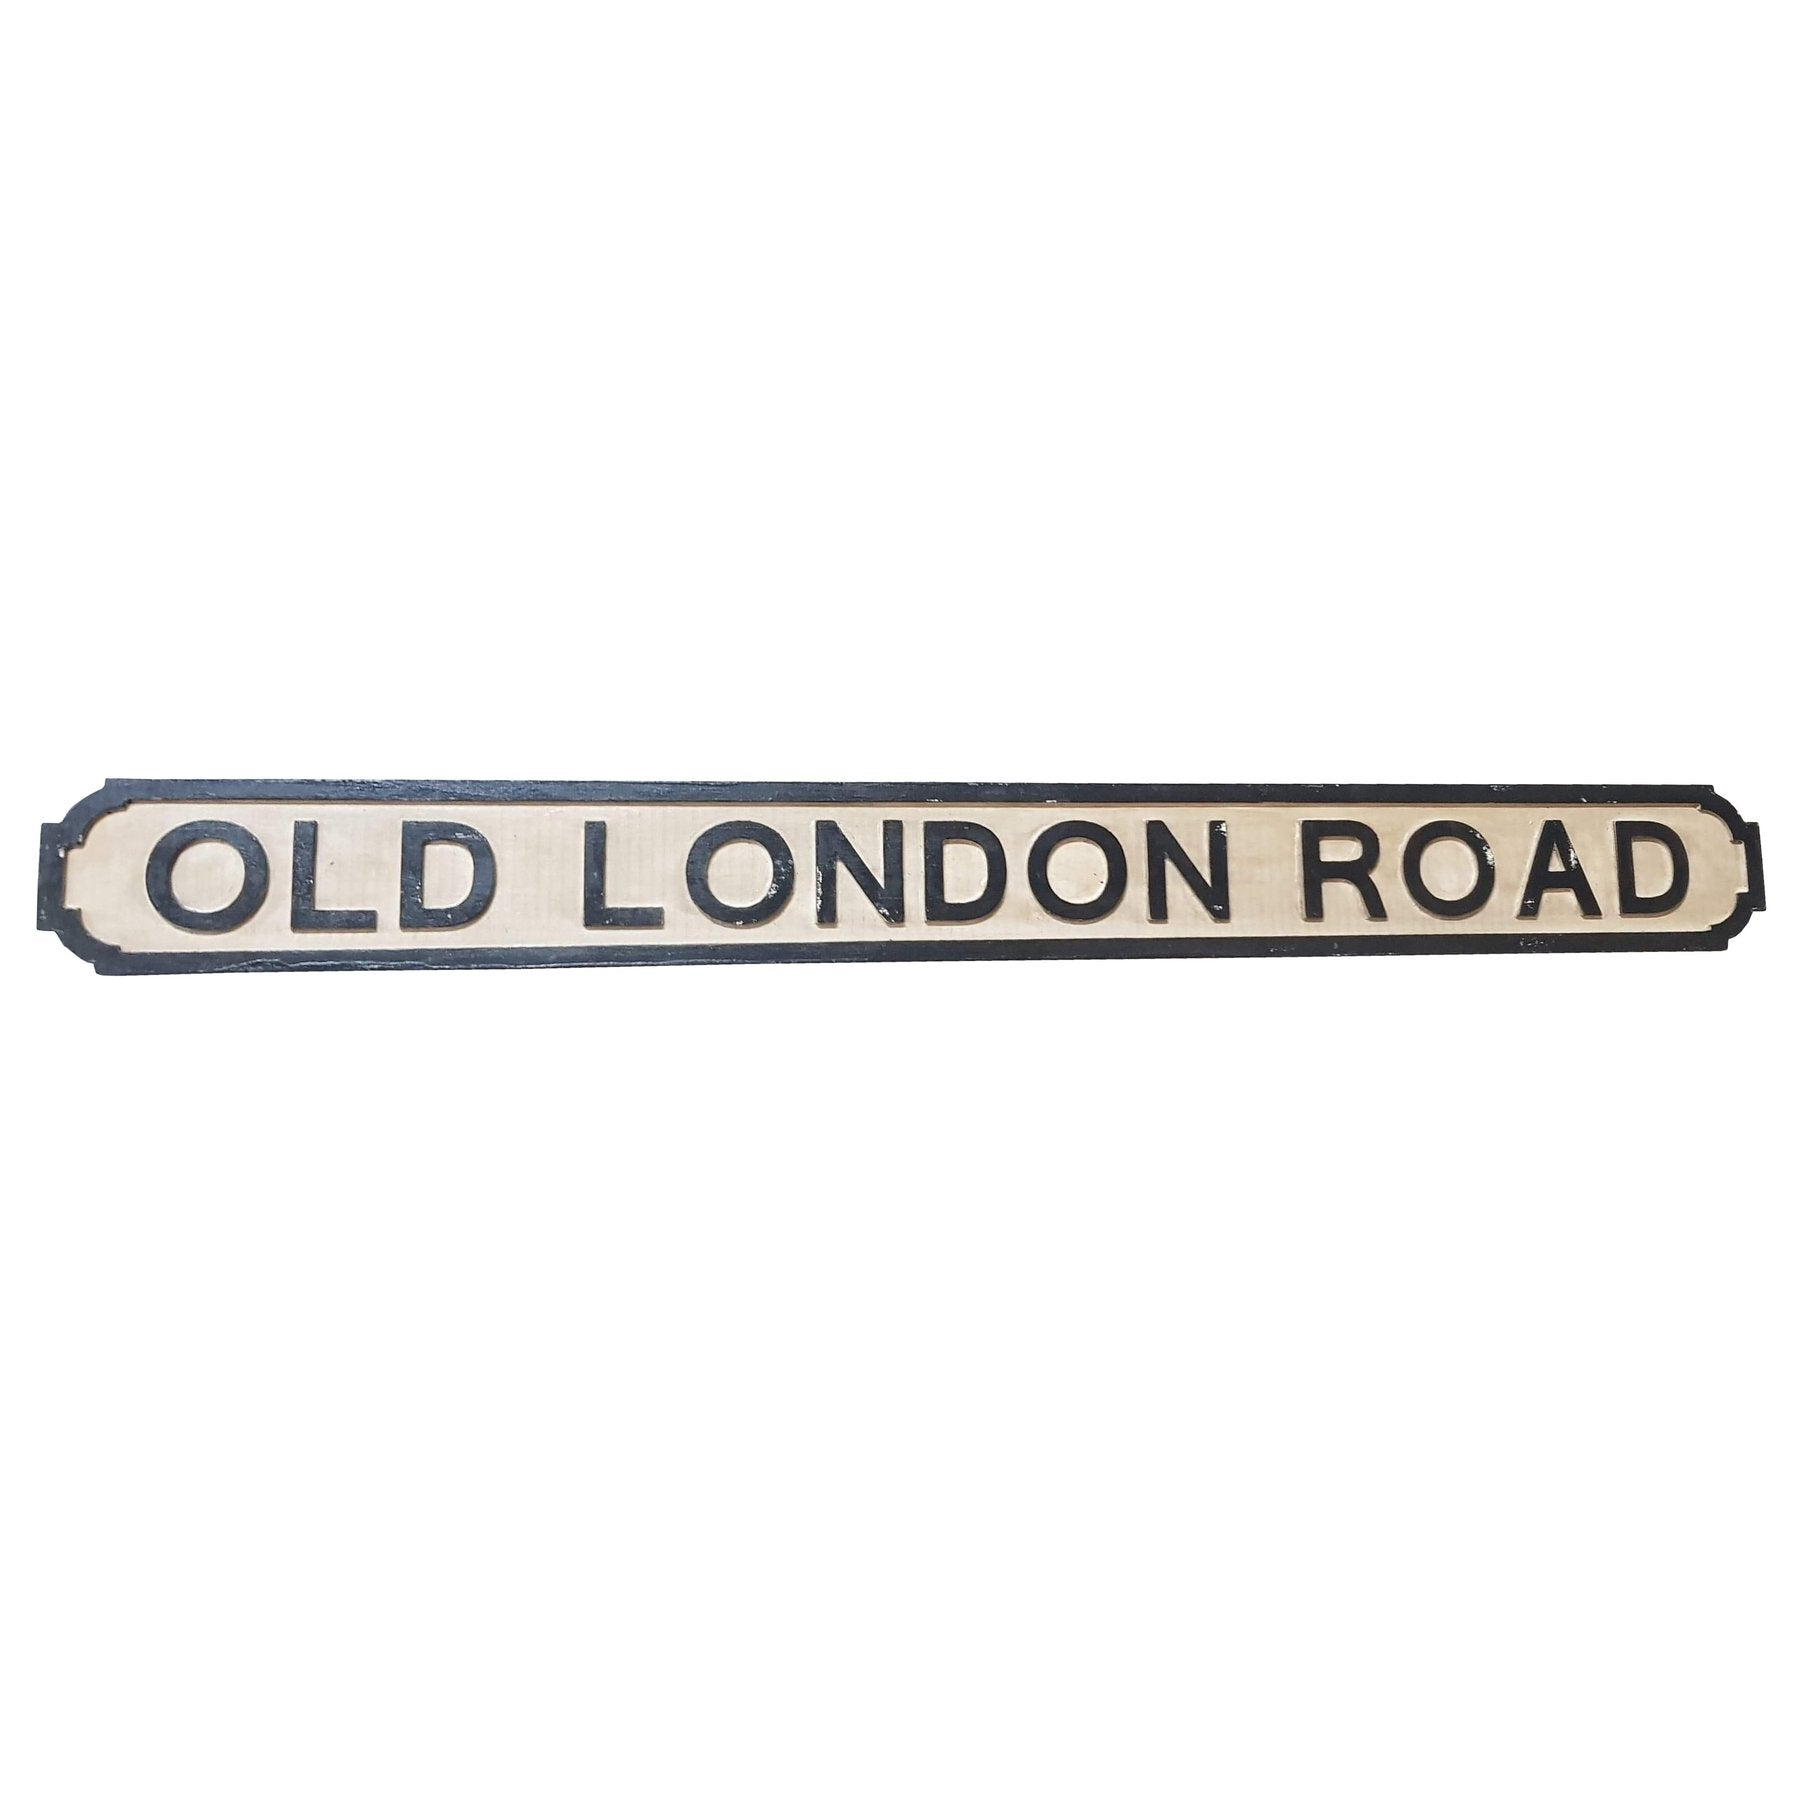 Old London Road Wooden Road Sign BG5